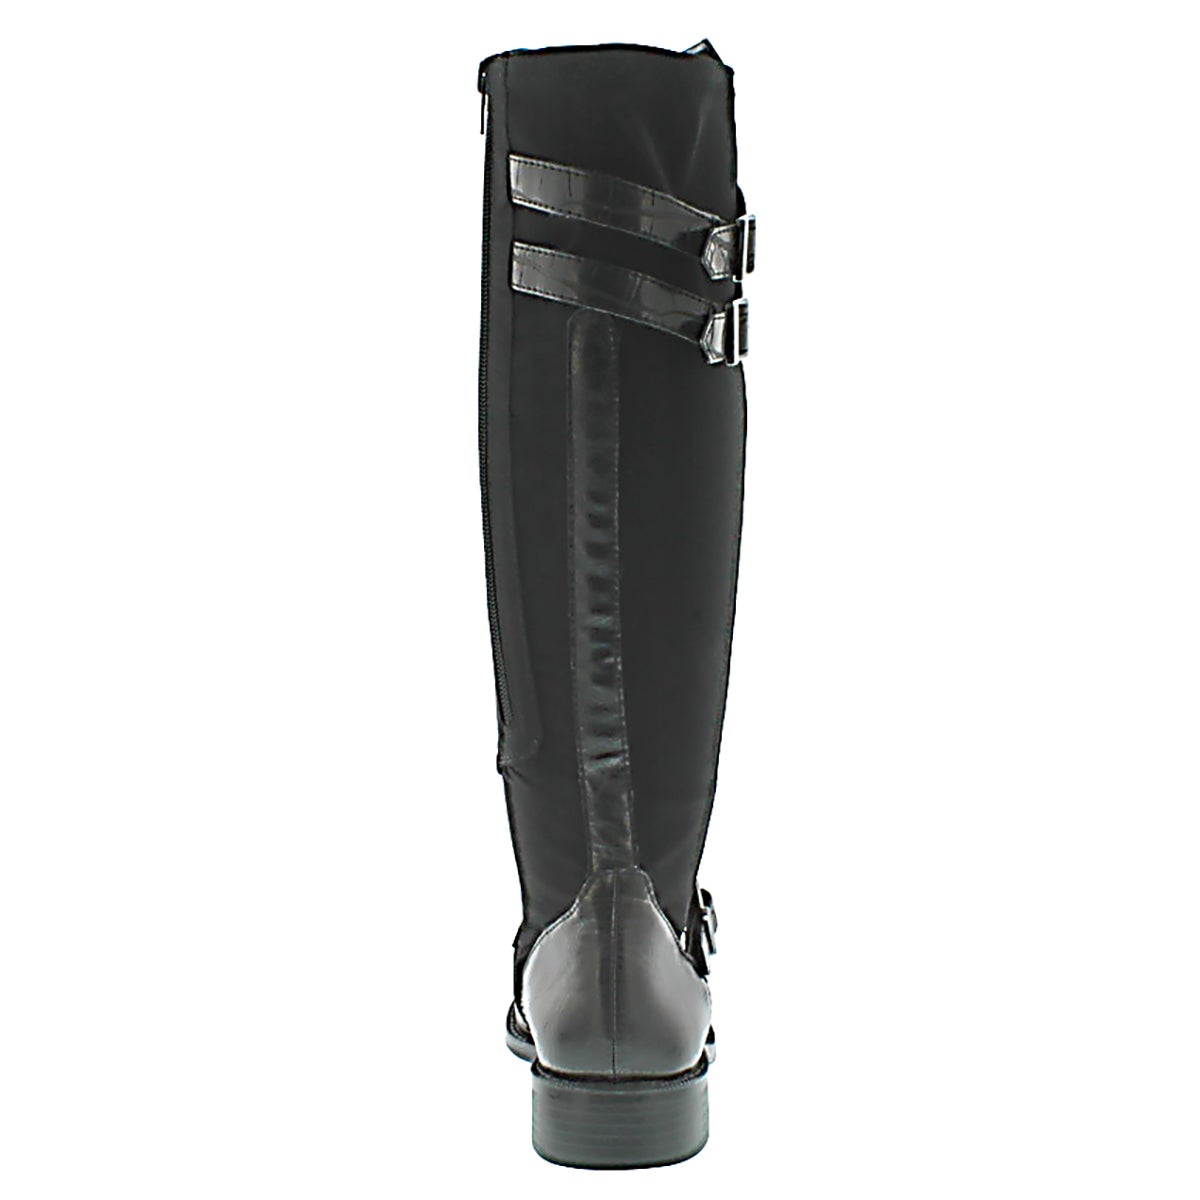 Lds Bridel Suite blk tall riding boot